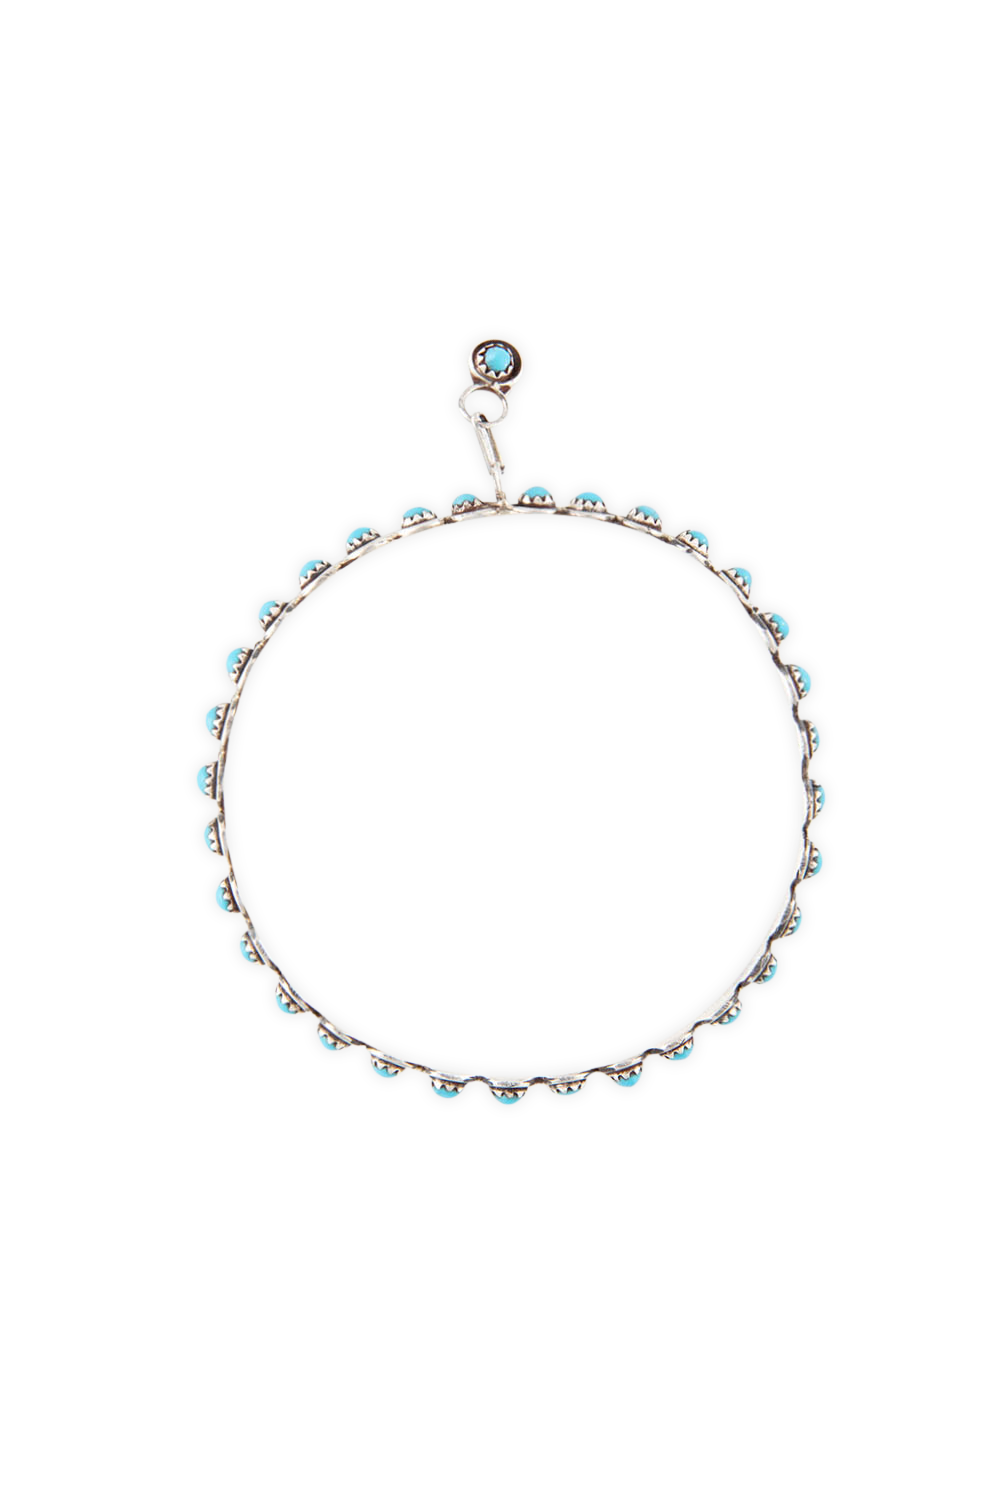 Earrings, Hoop, Turquoise, Zuni, 410